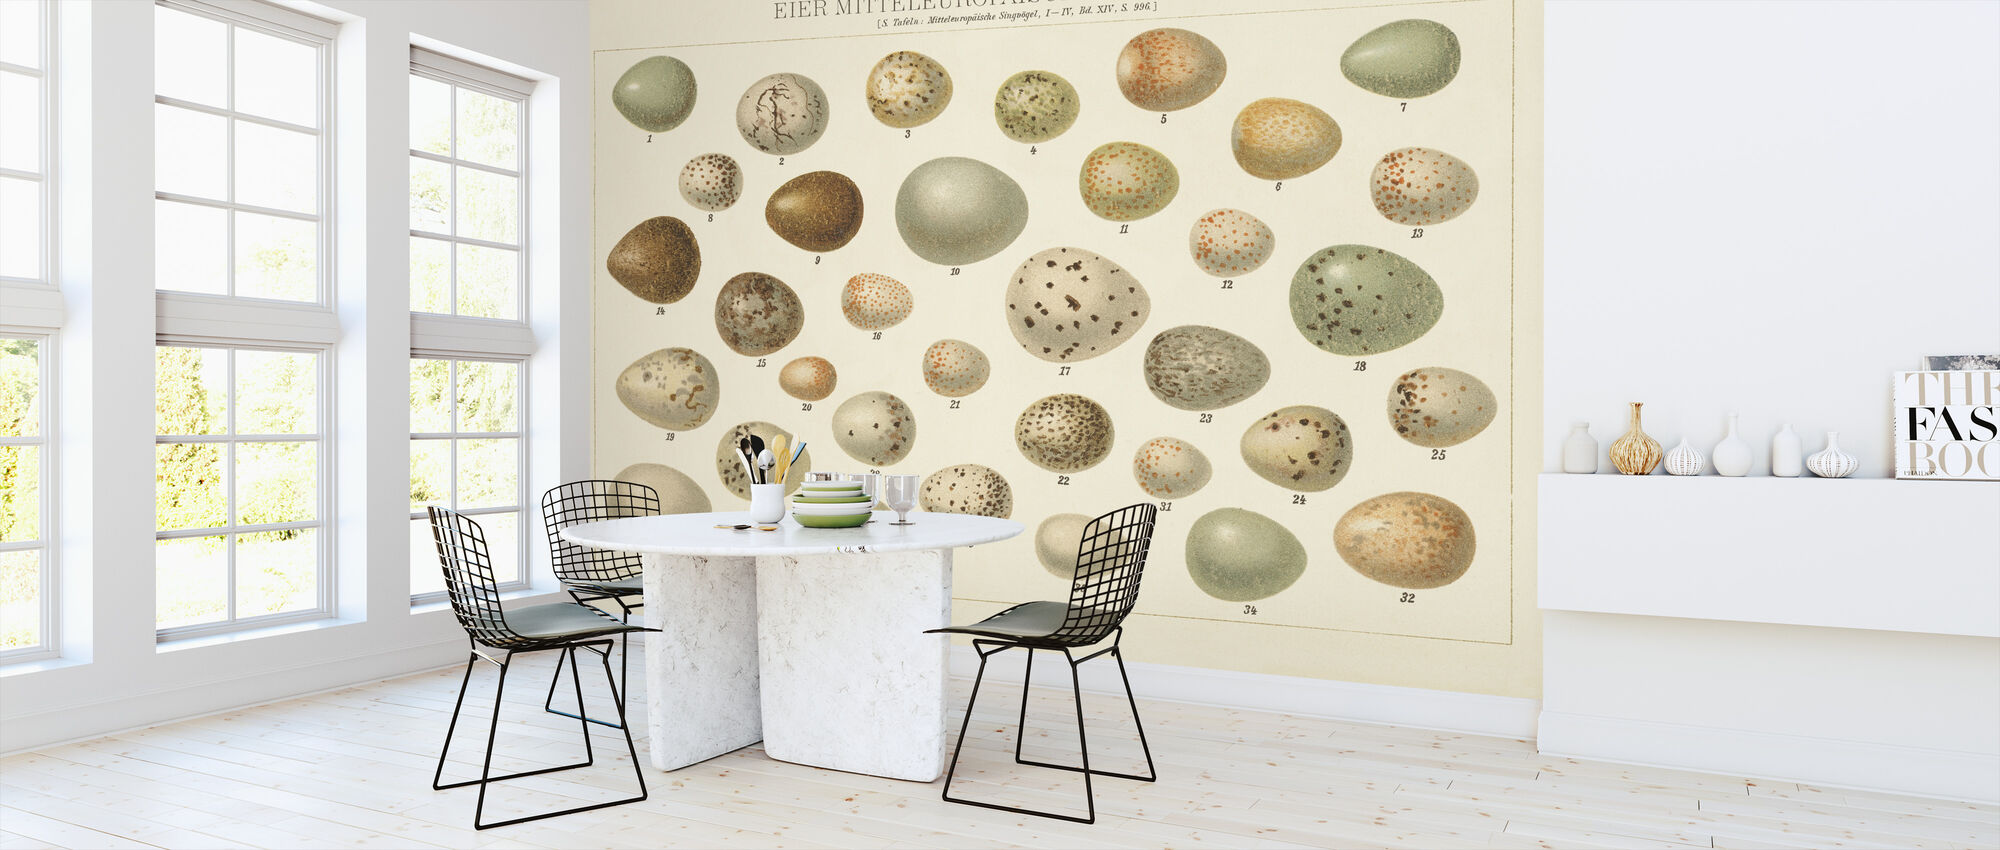 Song Bird Egg Chart v2 - Wallpaper - Kitchen